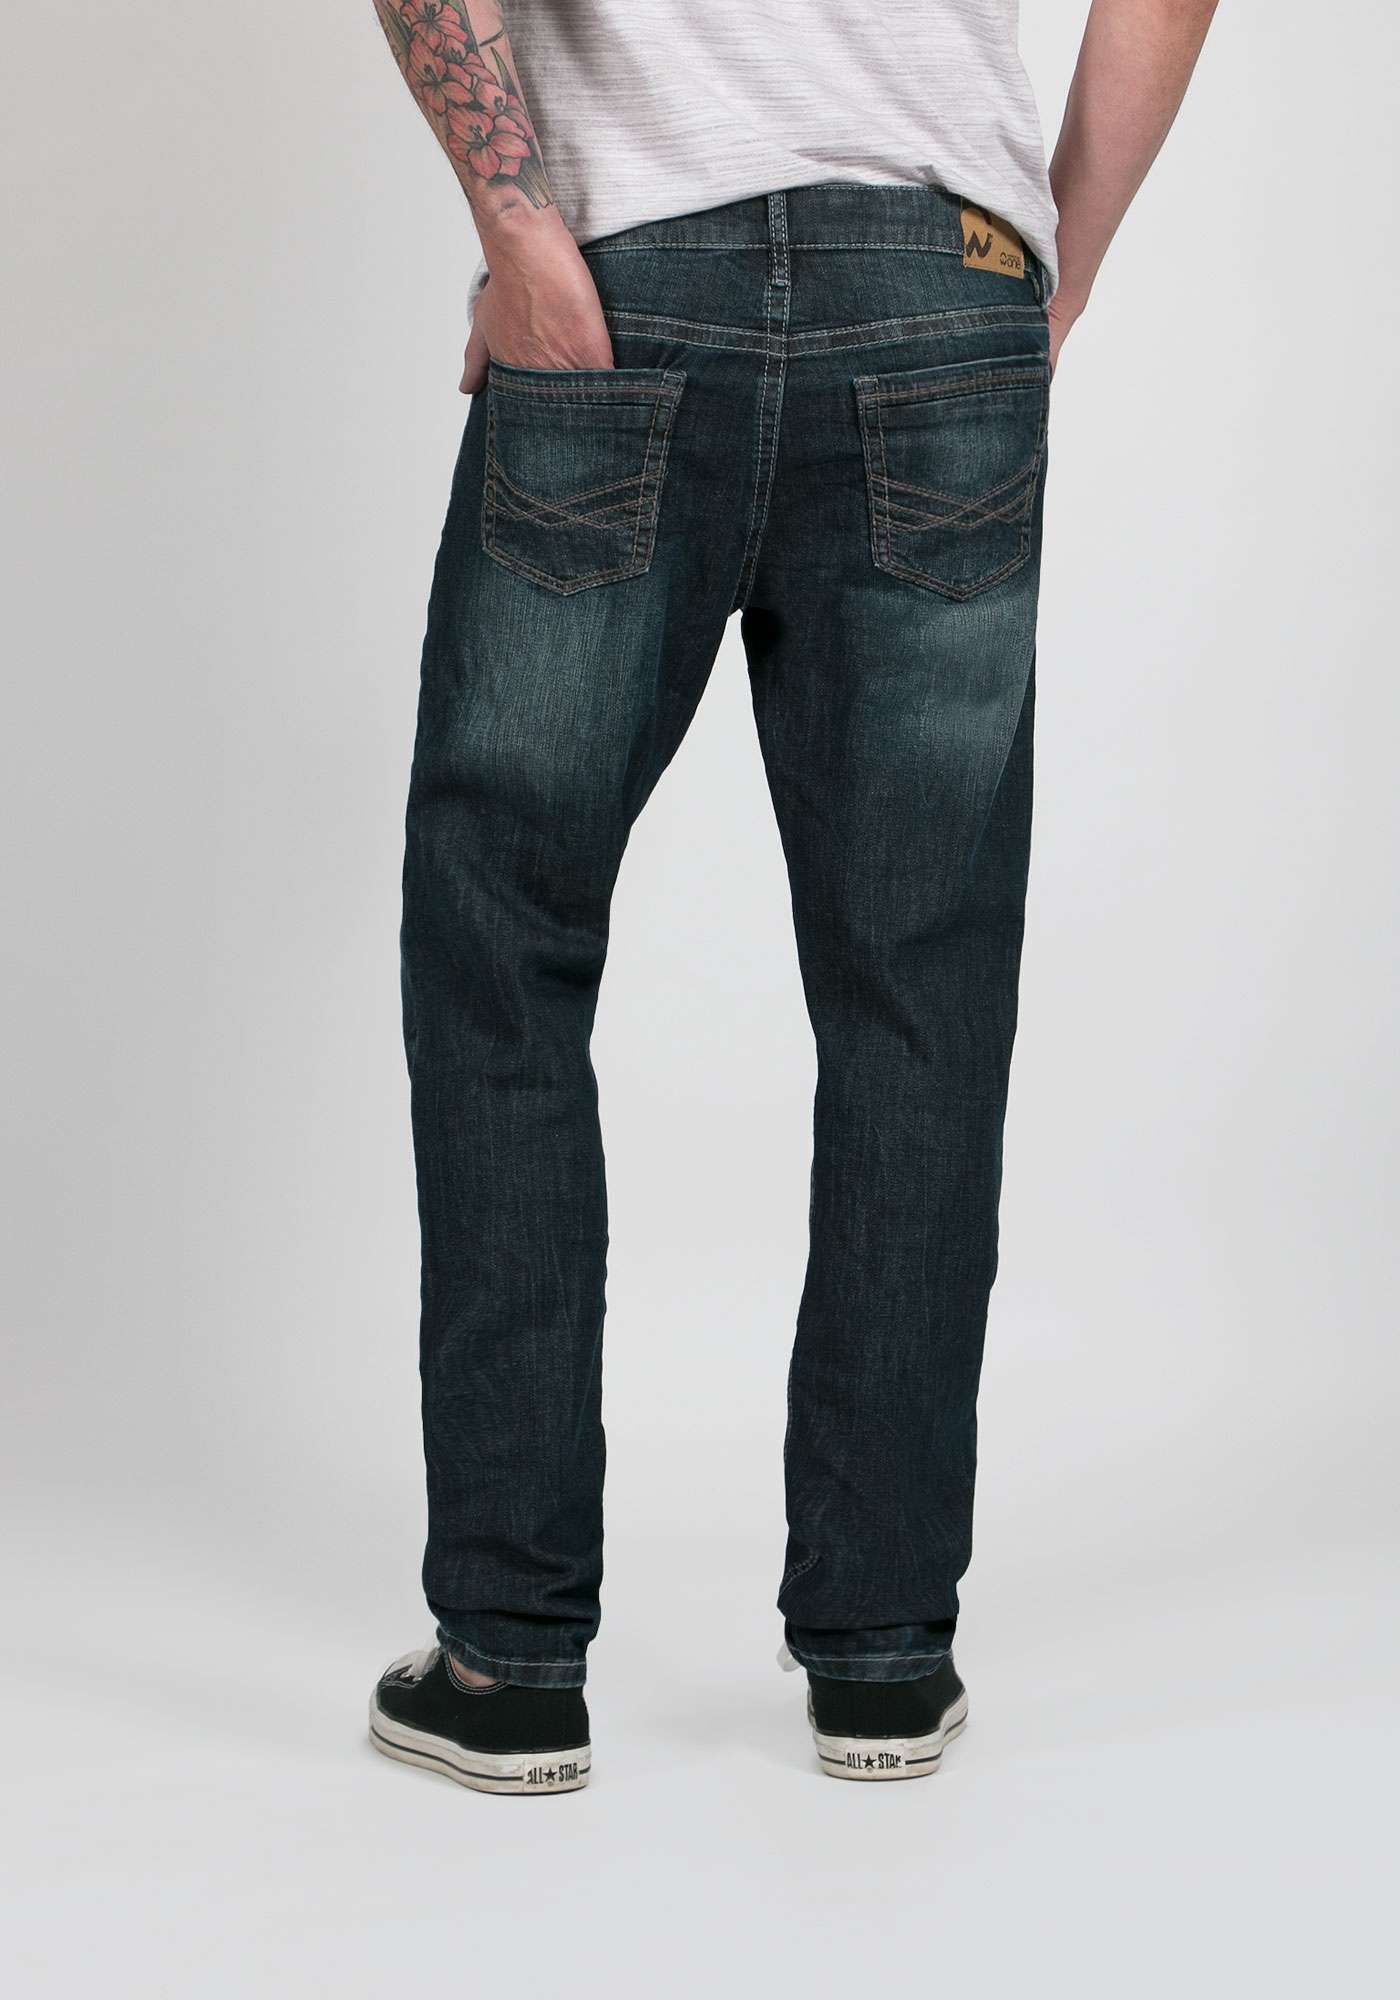 Mens Stretch Jeans With Spandex